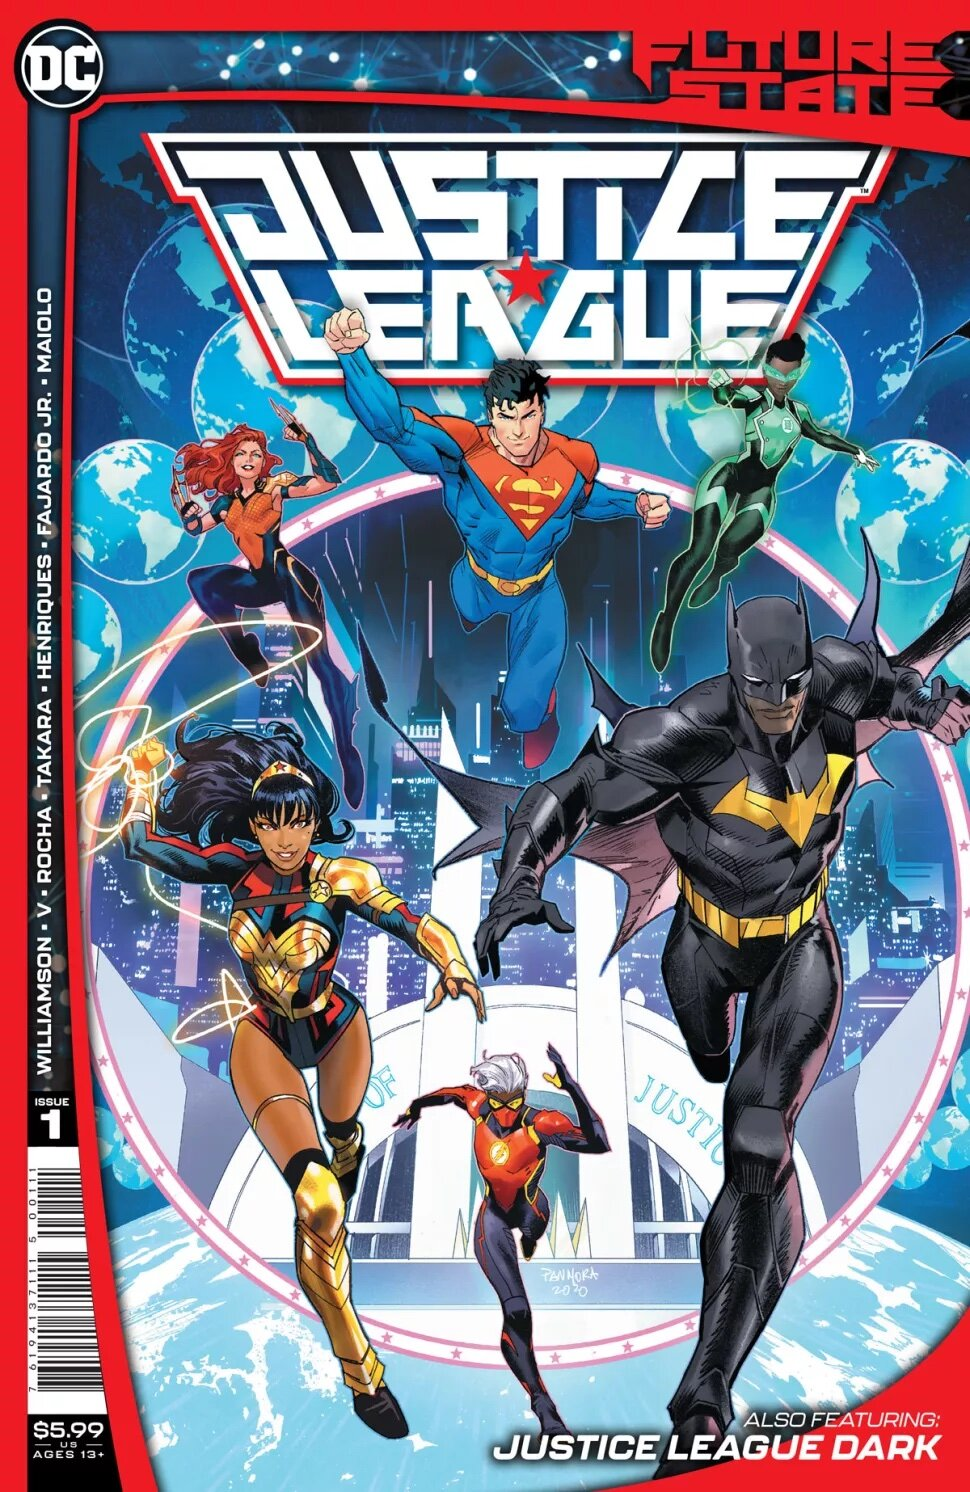 "SYNOPSIS:    ""Zatanna and Detective Chimp (now possessed by Etrigan) must round up new and old teammates, including John Constantine, Ragman, and Madame Xanadu. Their mission? To battle the power-mad Crow King, Merlin, before his plans for magical domination destroy the fabric of reality. But where is Dr. Fate? And what led the team to disband in the first place? Discover the truth here!"""